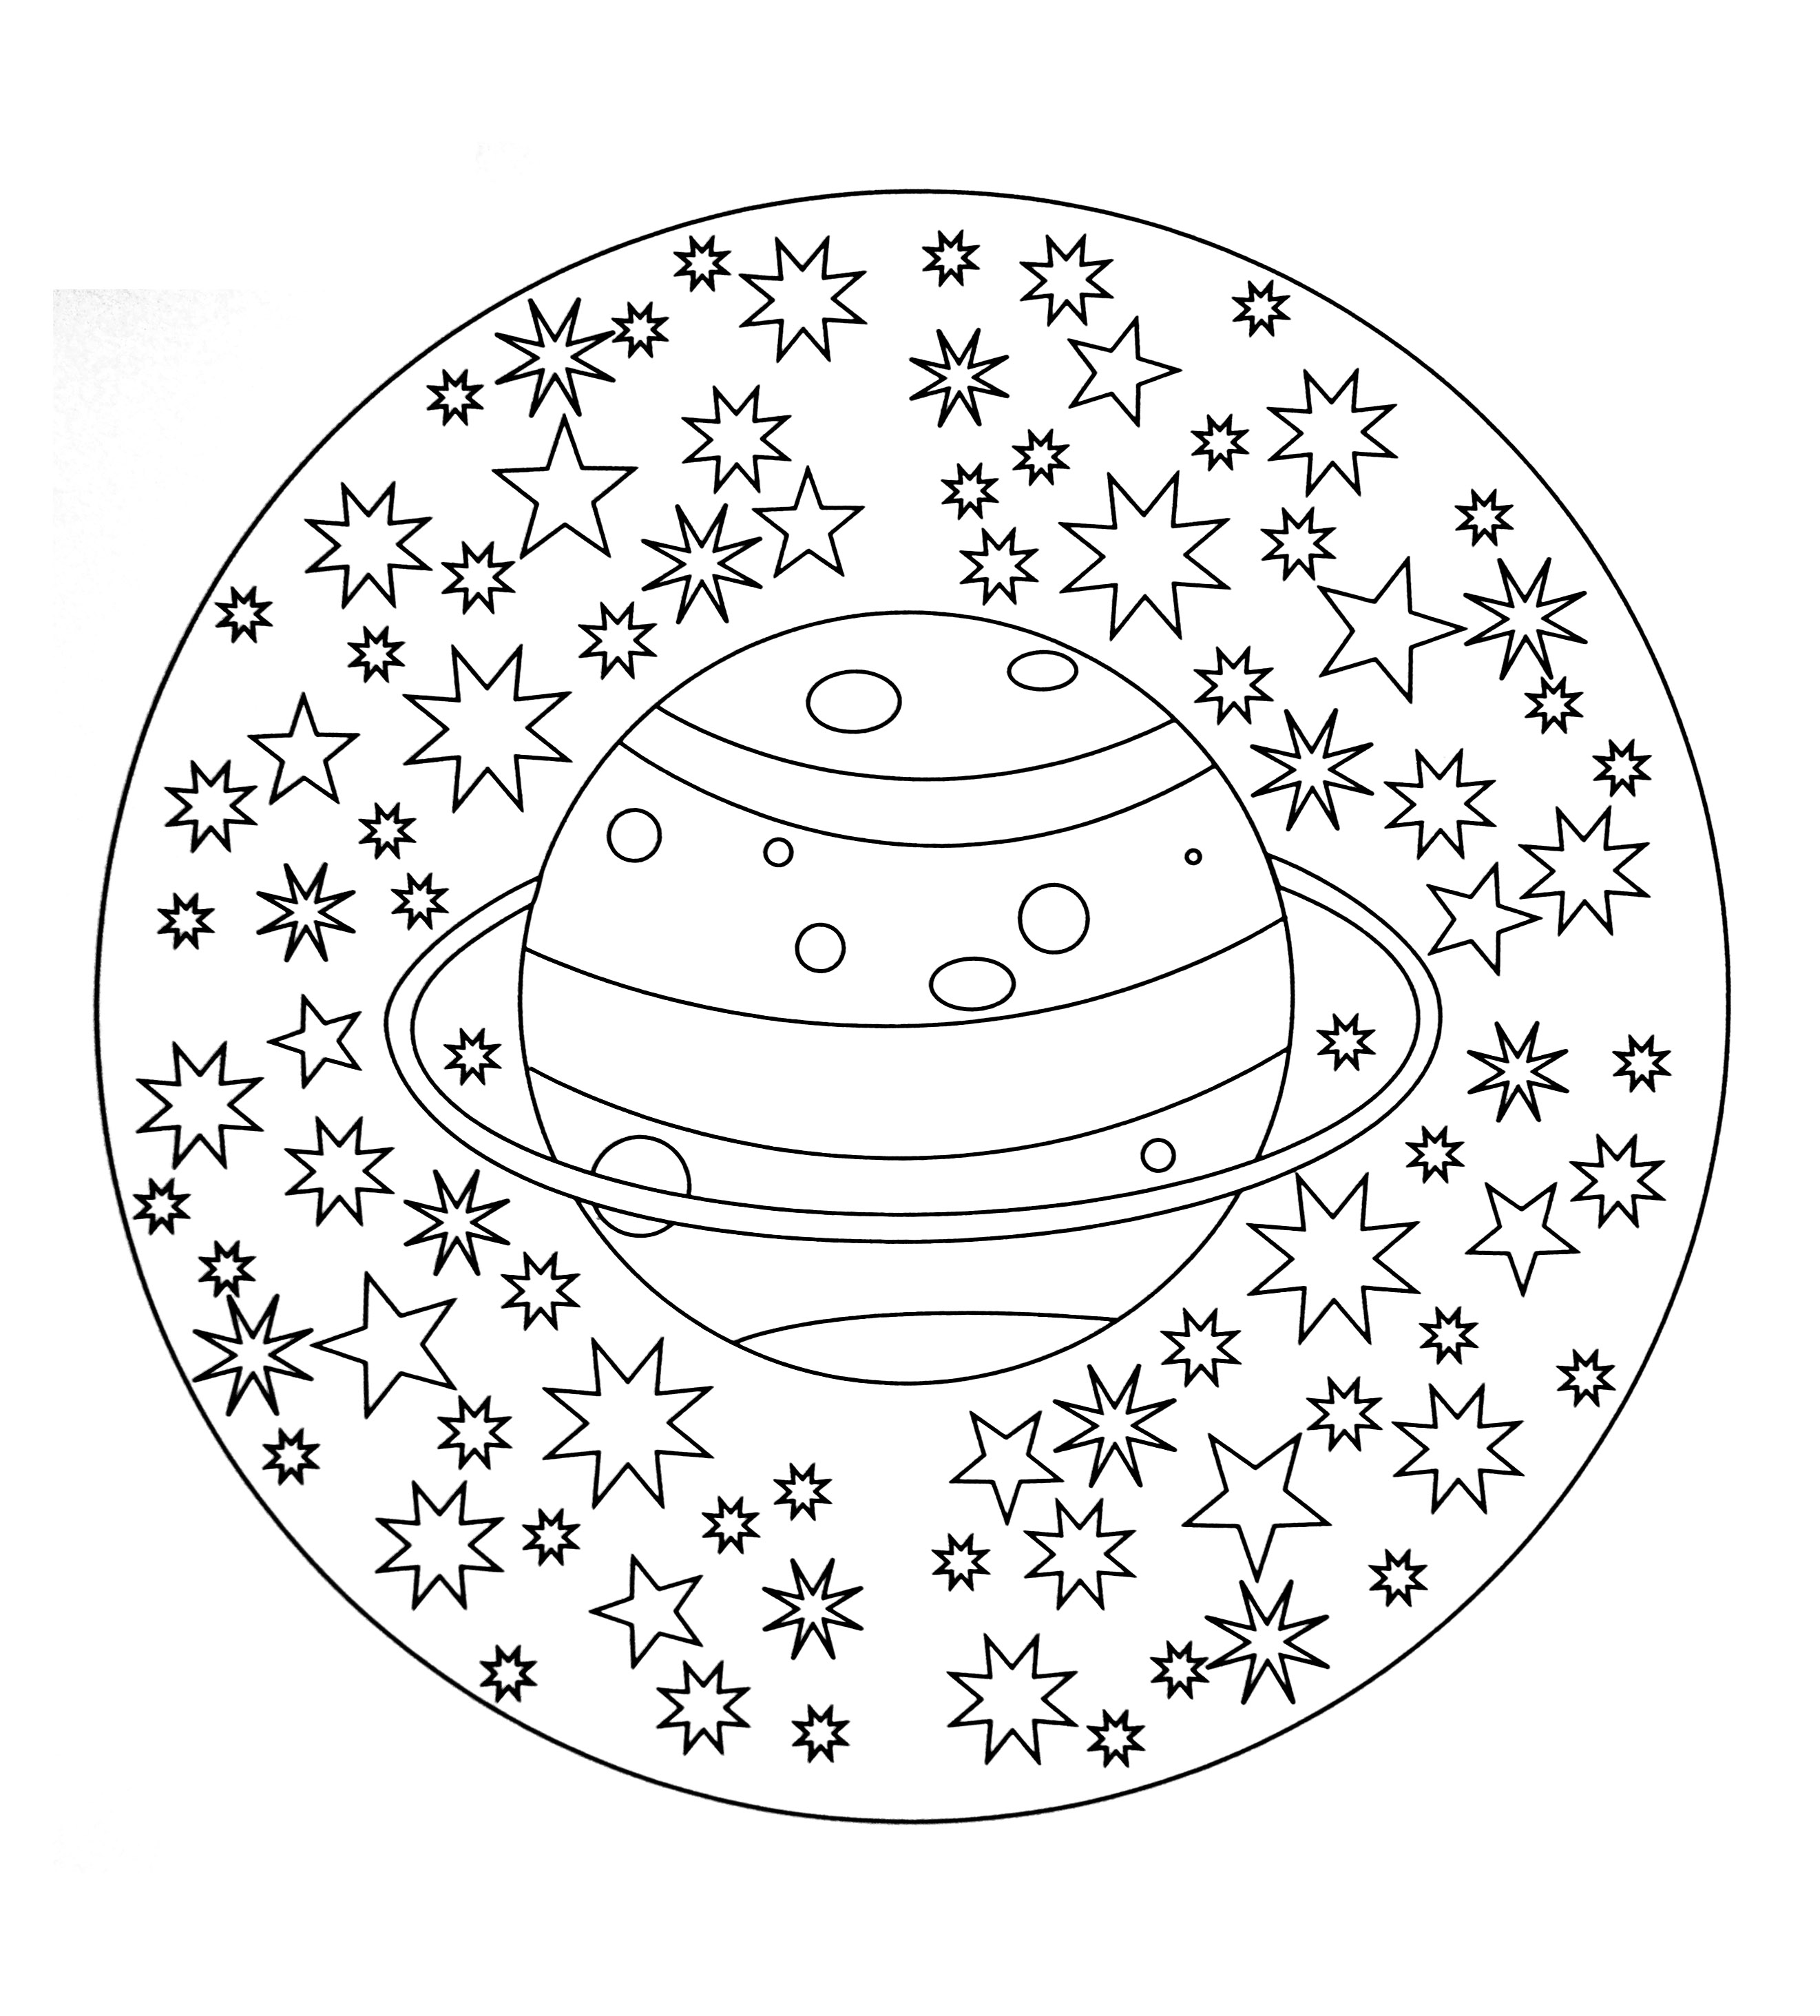 coloring app thati can download my photo to color coloring pages